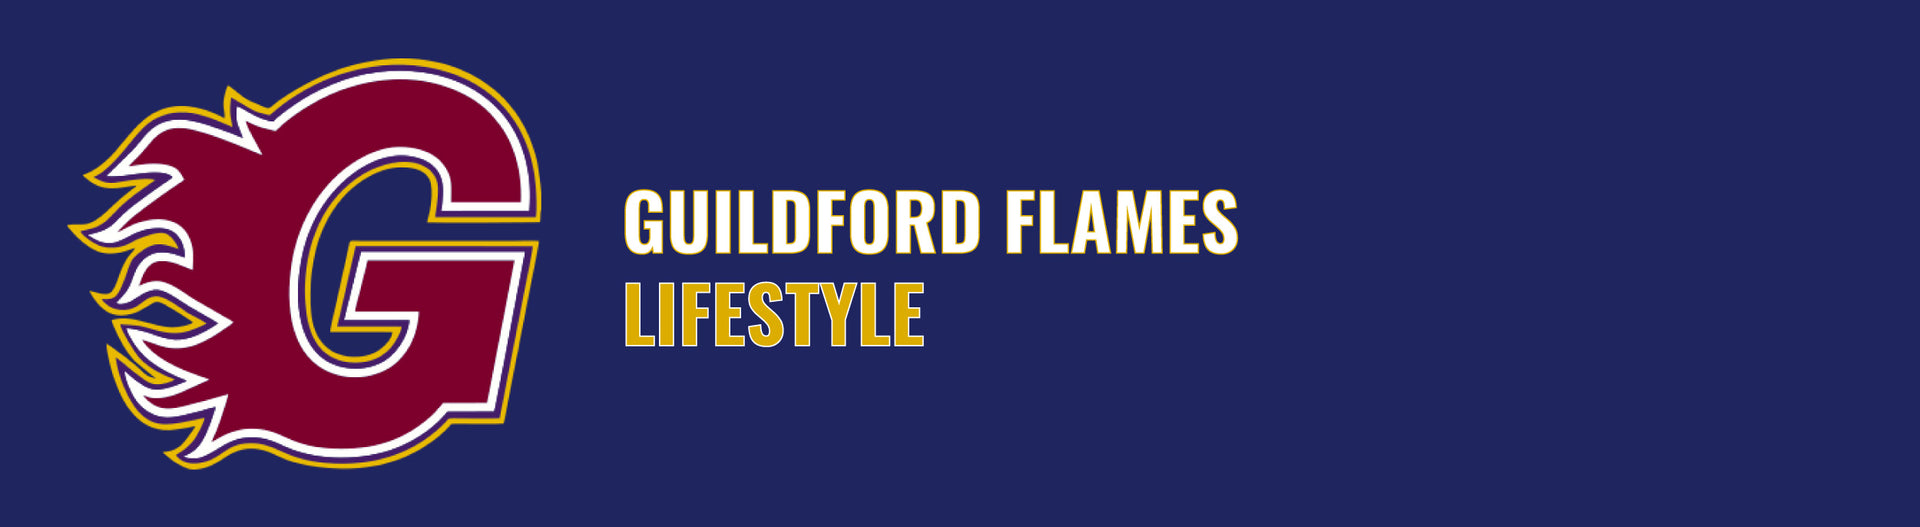 Guildford Flames Lifestyle Merchandise 2020